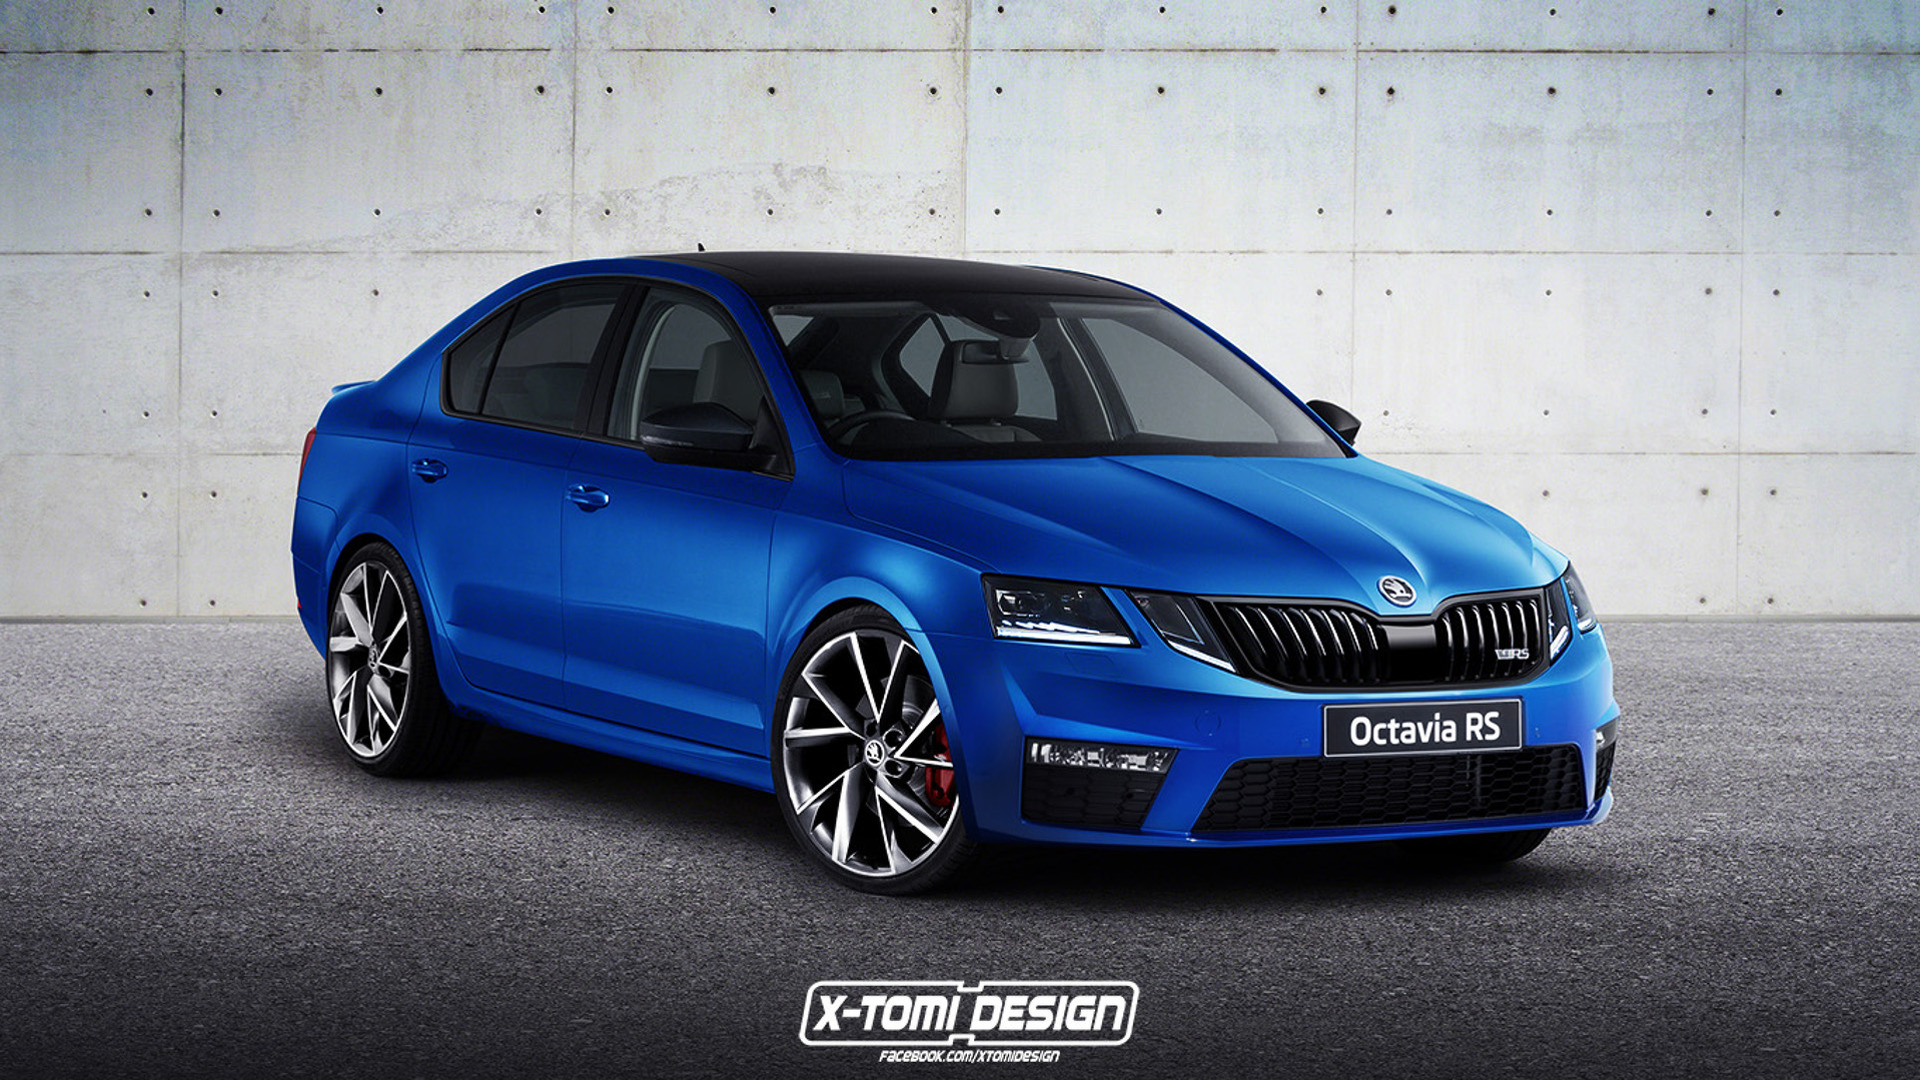 Does The New Skoda Octavia Facelift Look Better In Sporty Rs Trim